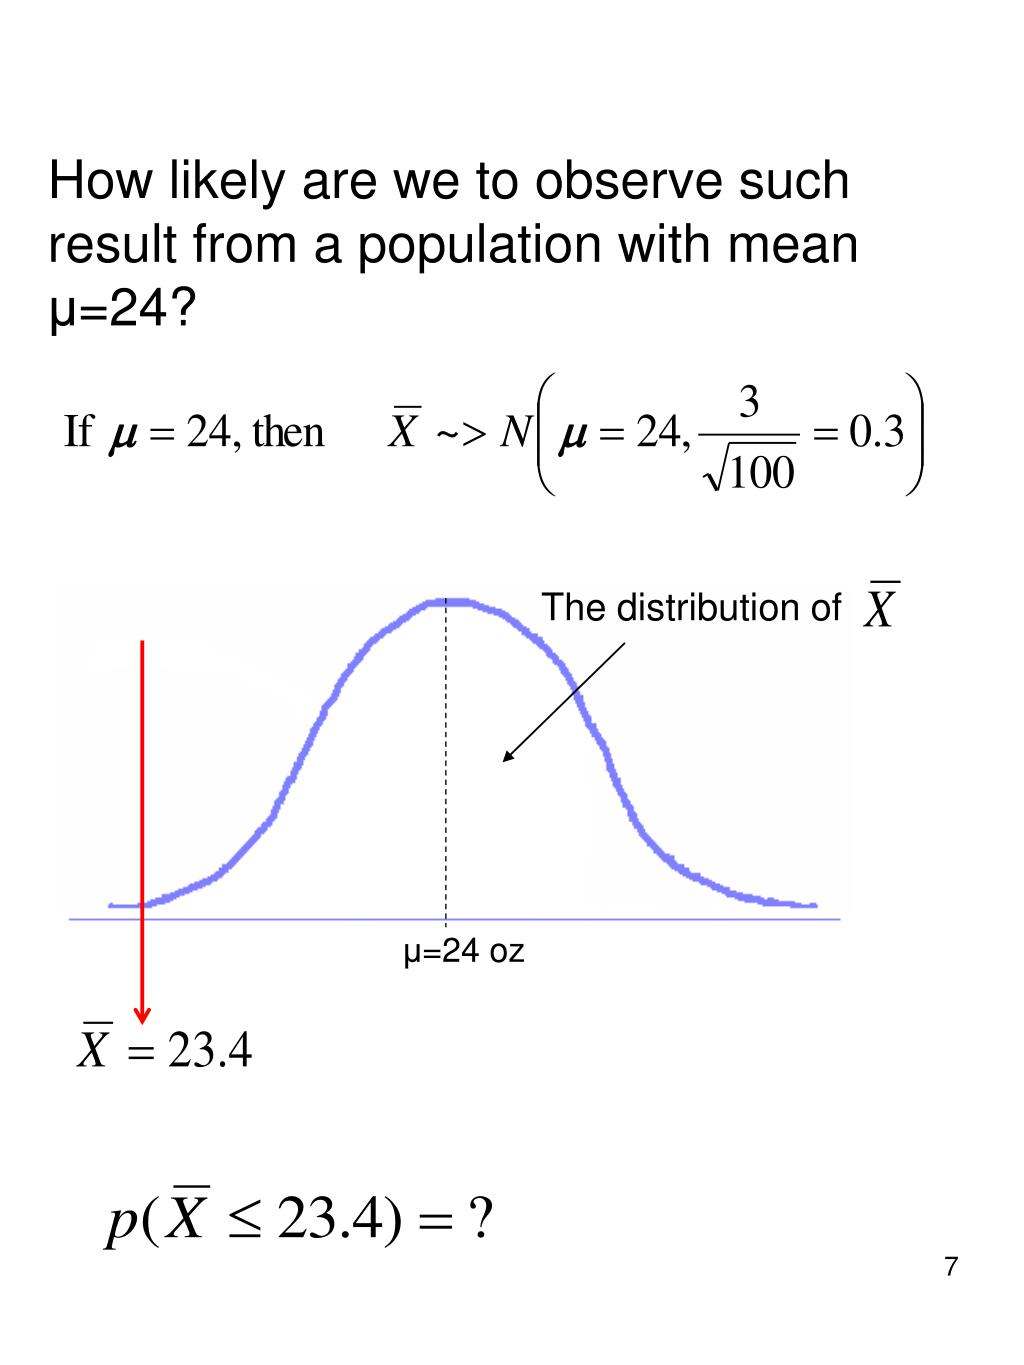 How likely are we to observe such result from a population with mean